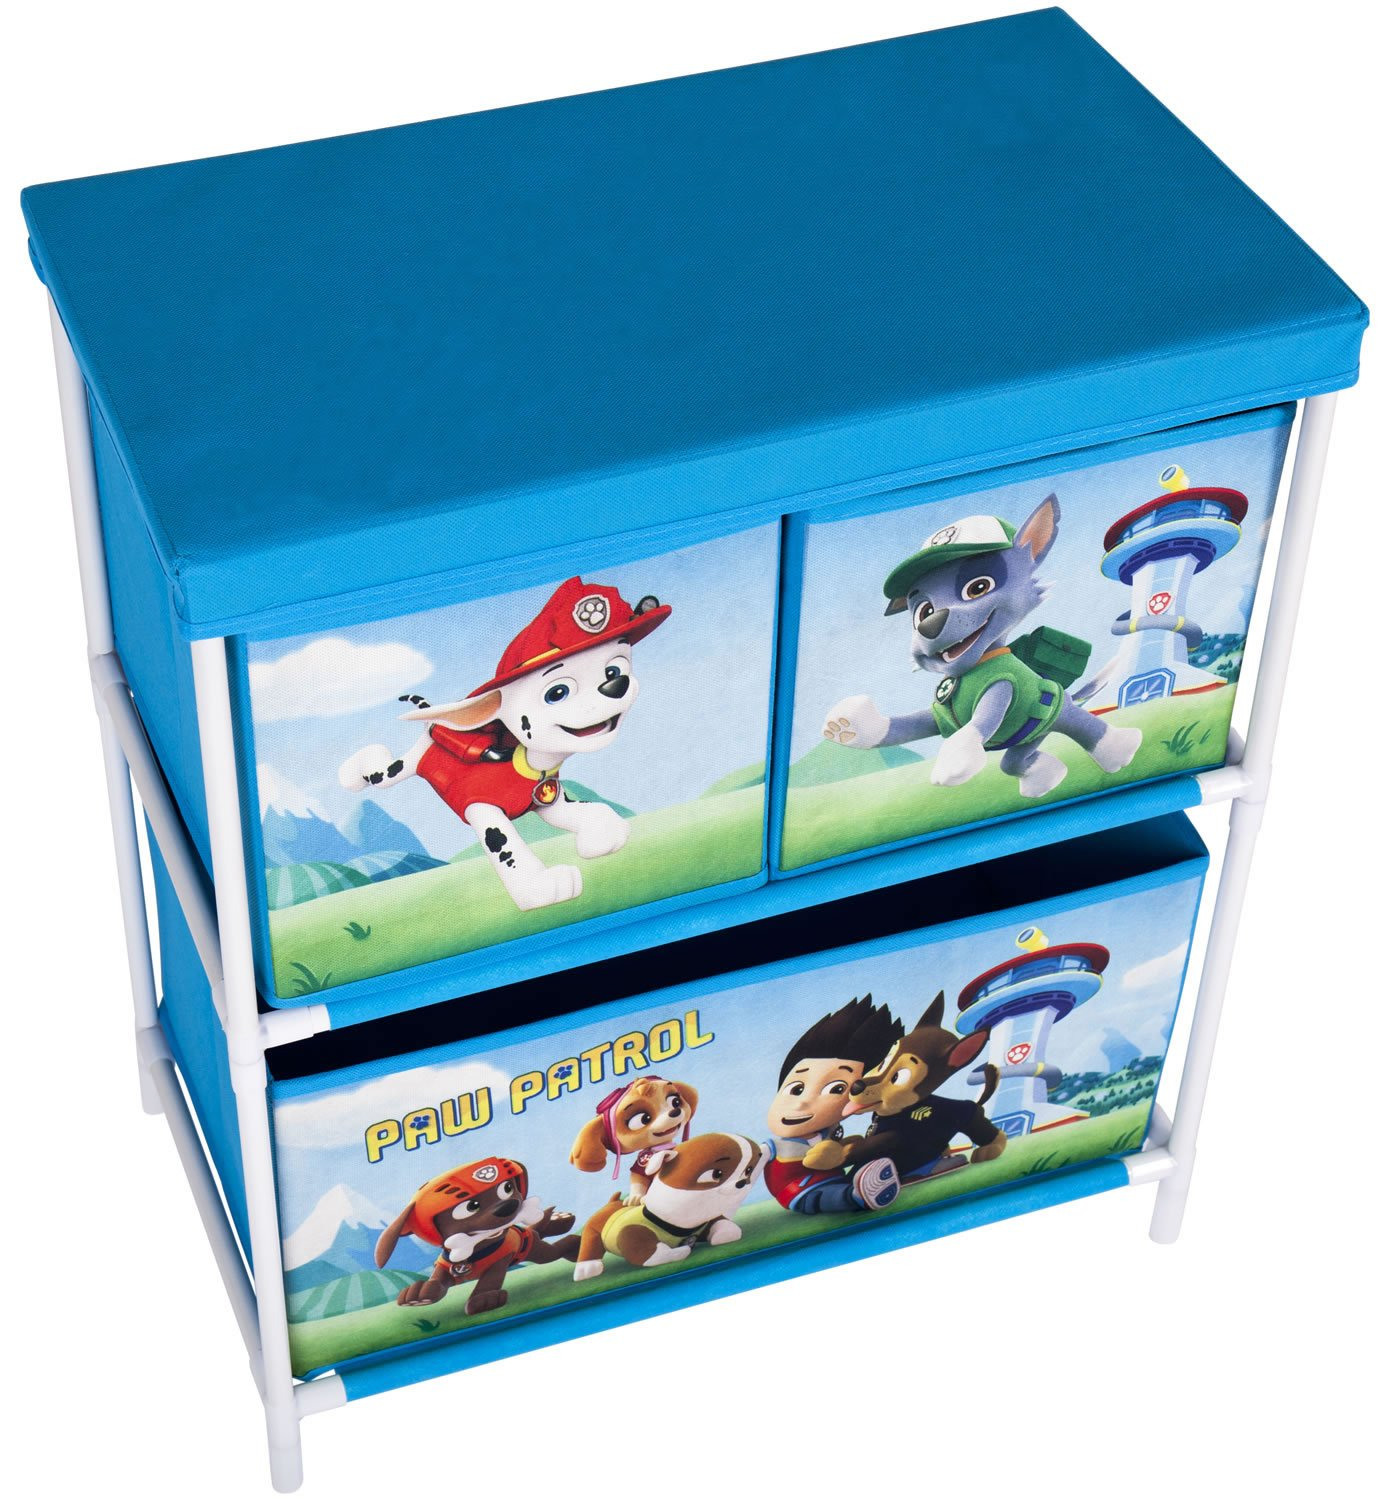 Paw Patrol Chase, Ryder & Friends Kids Toy Storage Unit 2 Tier, 3 Drawer Organiser 60 x 53 x 30cm Boys Blue Fabric Storage Solution Furniture, Childrens Baskets/Bins for Playroom, Bedroom, Living Room